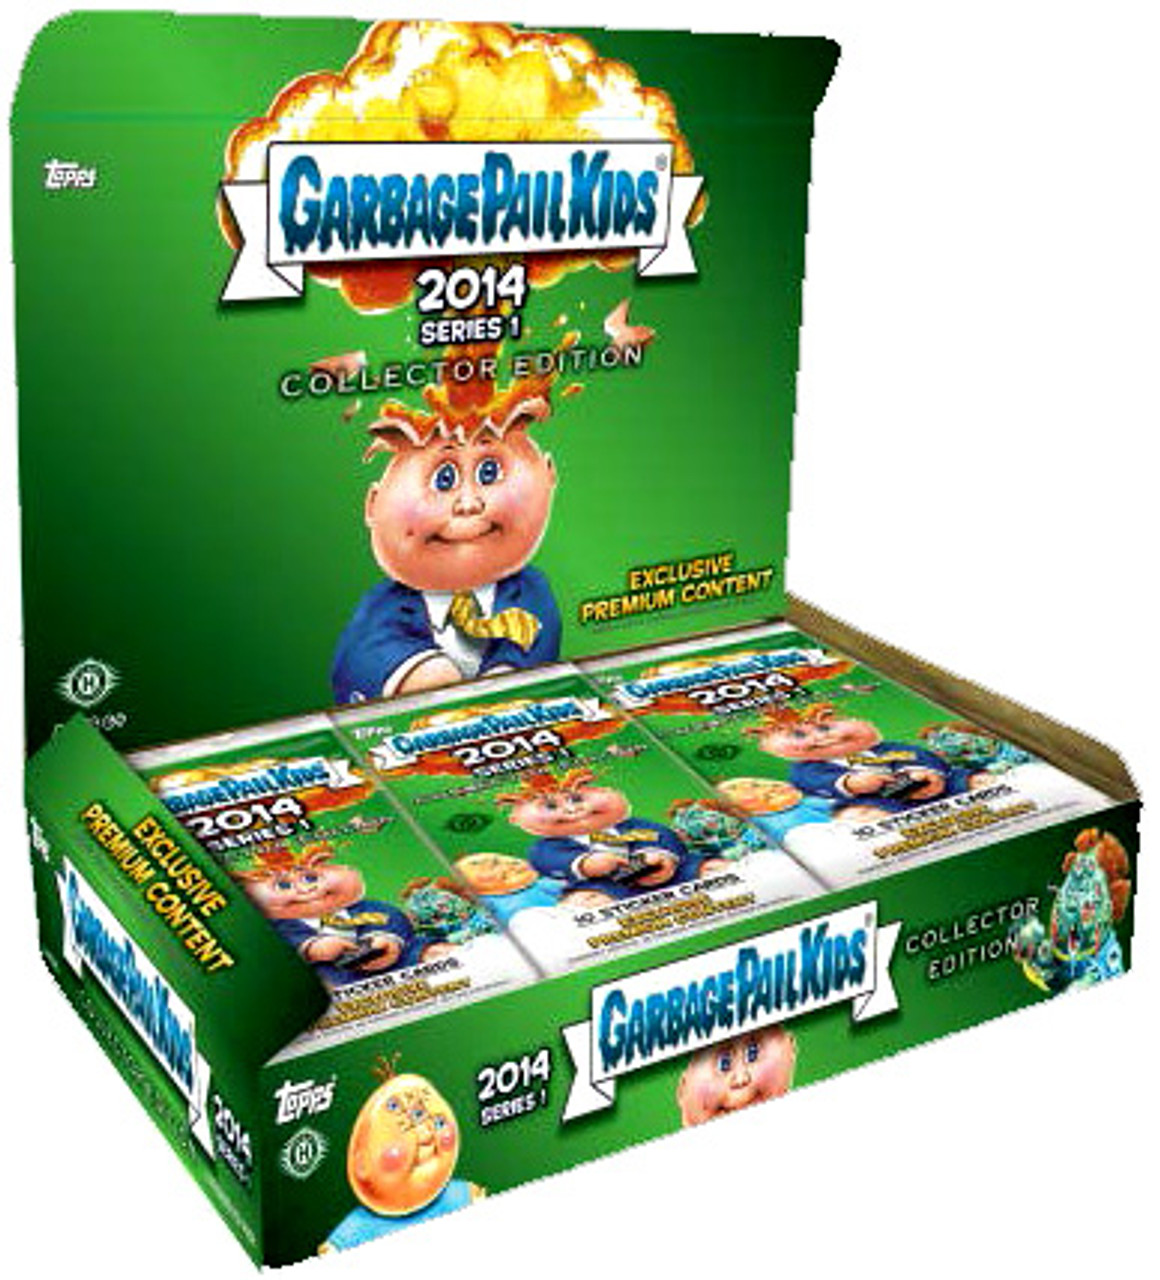 Garbage Pail Kids 2014 Series 1 Collector's Edition Box